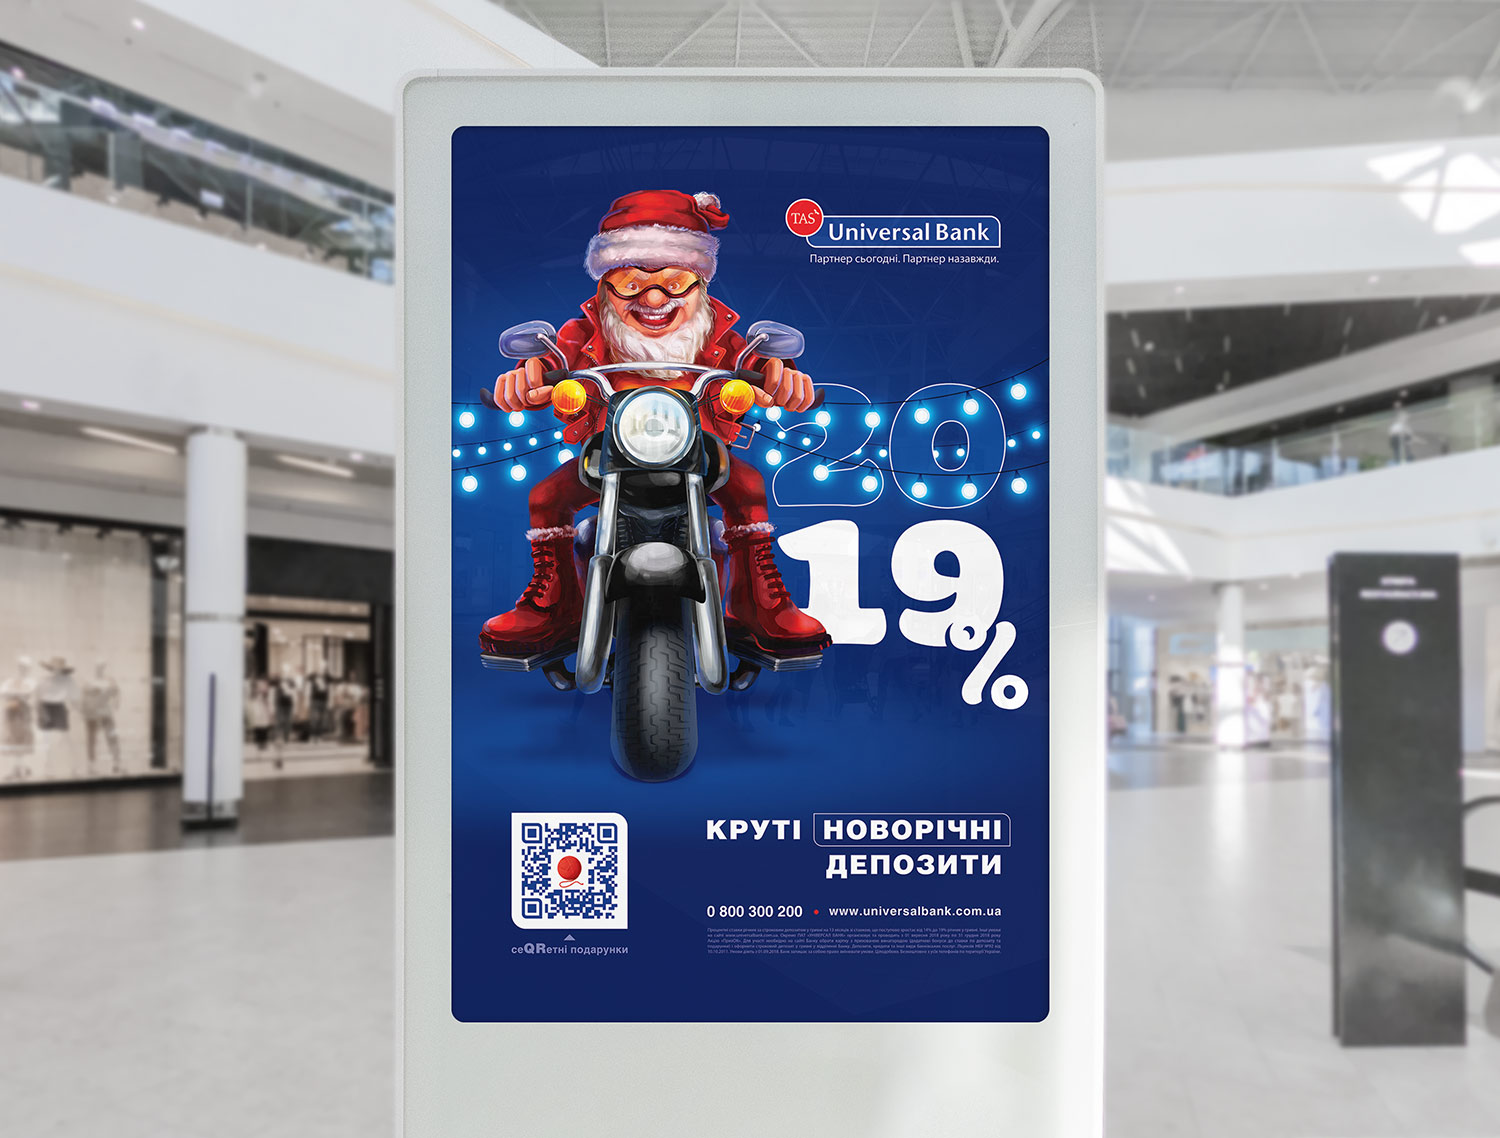 A New Year advertisement of Universal Bank. Cool deposits, creative poster illustration.